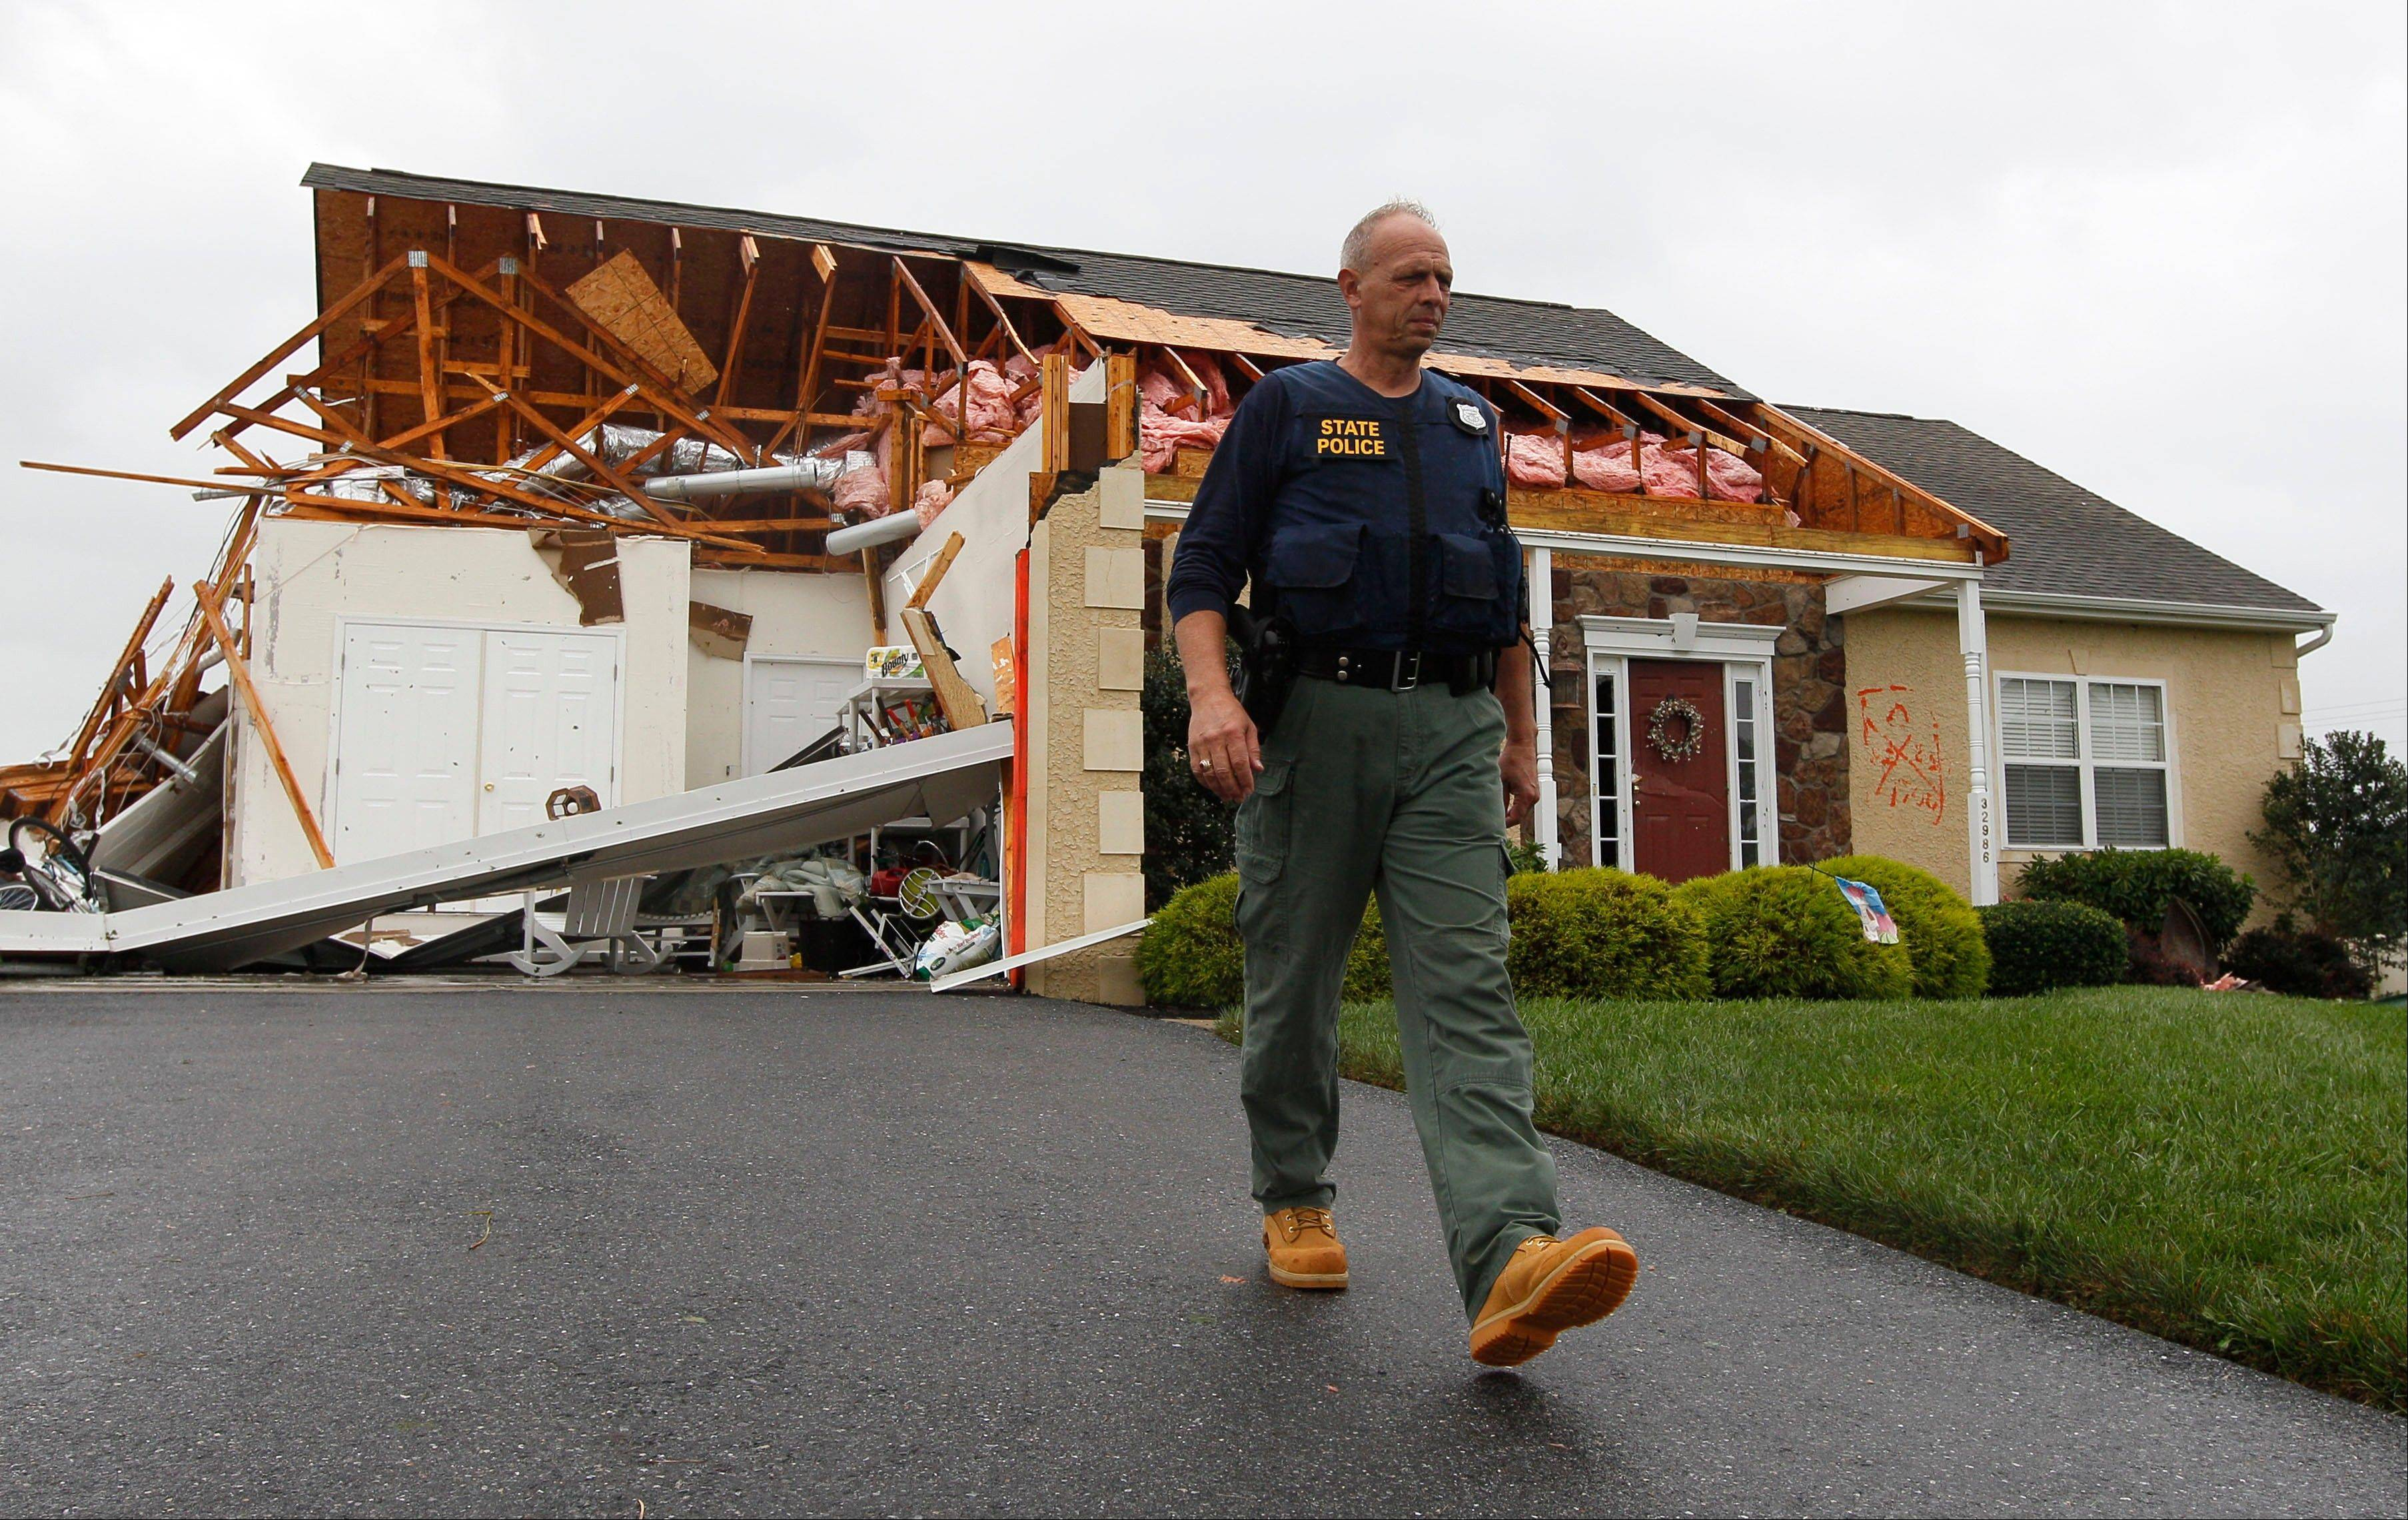 A member of the Delaware State Police walks away from a house that was heavily damaged by a possible tornado in Lewes, Del., Sunday, Aug. 28, 2011, after Hurricane Irene churned along the Delaware coast overnight. From North Carolina to New Jersey, Hurricane Irene appeared to have fallen short of the doomsday predictions, but more than 4.5 million homes and businesses along the East Coast reportedly lost power, and at least 11 deaths were blamed on the storm.